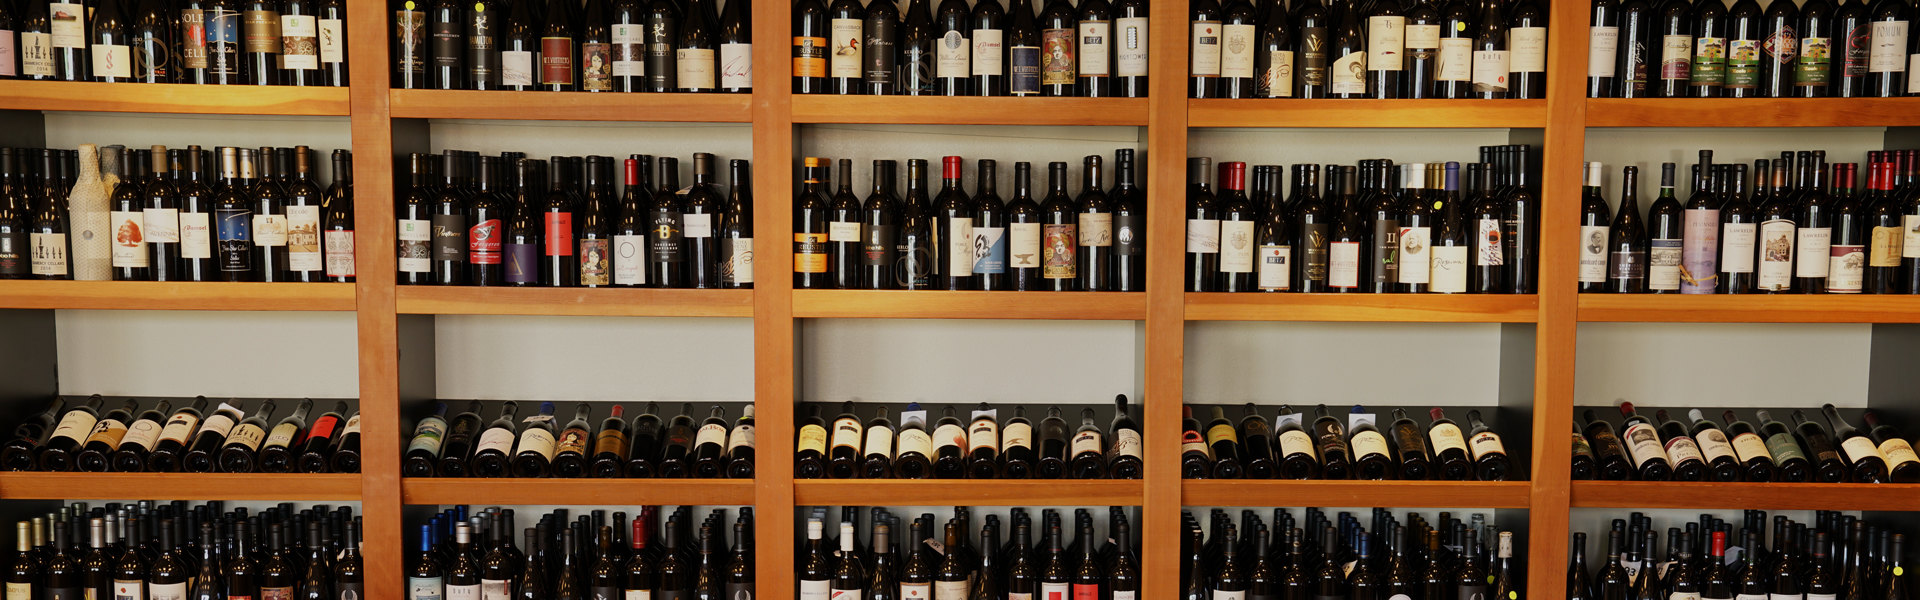 Specializing in the Boutique wines of Washington